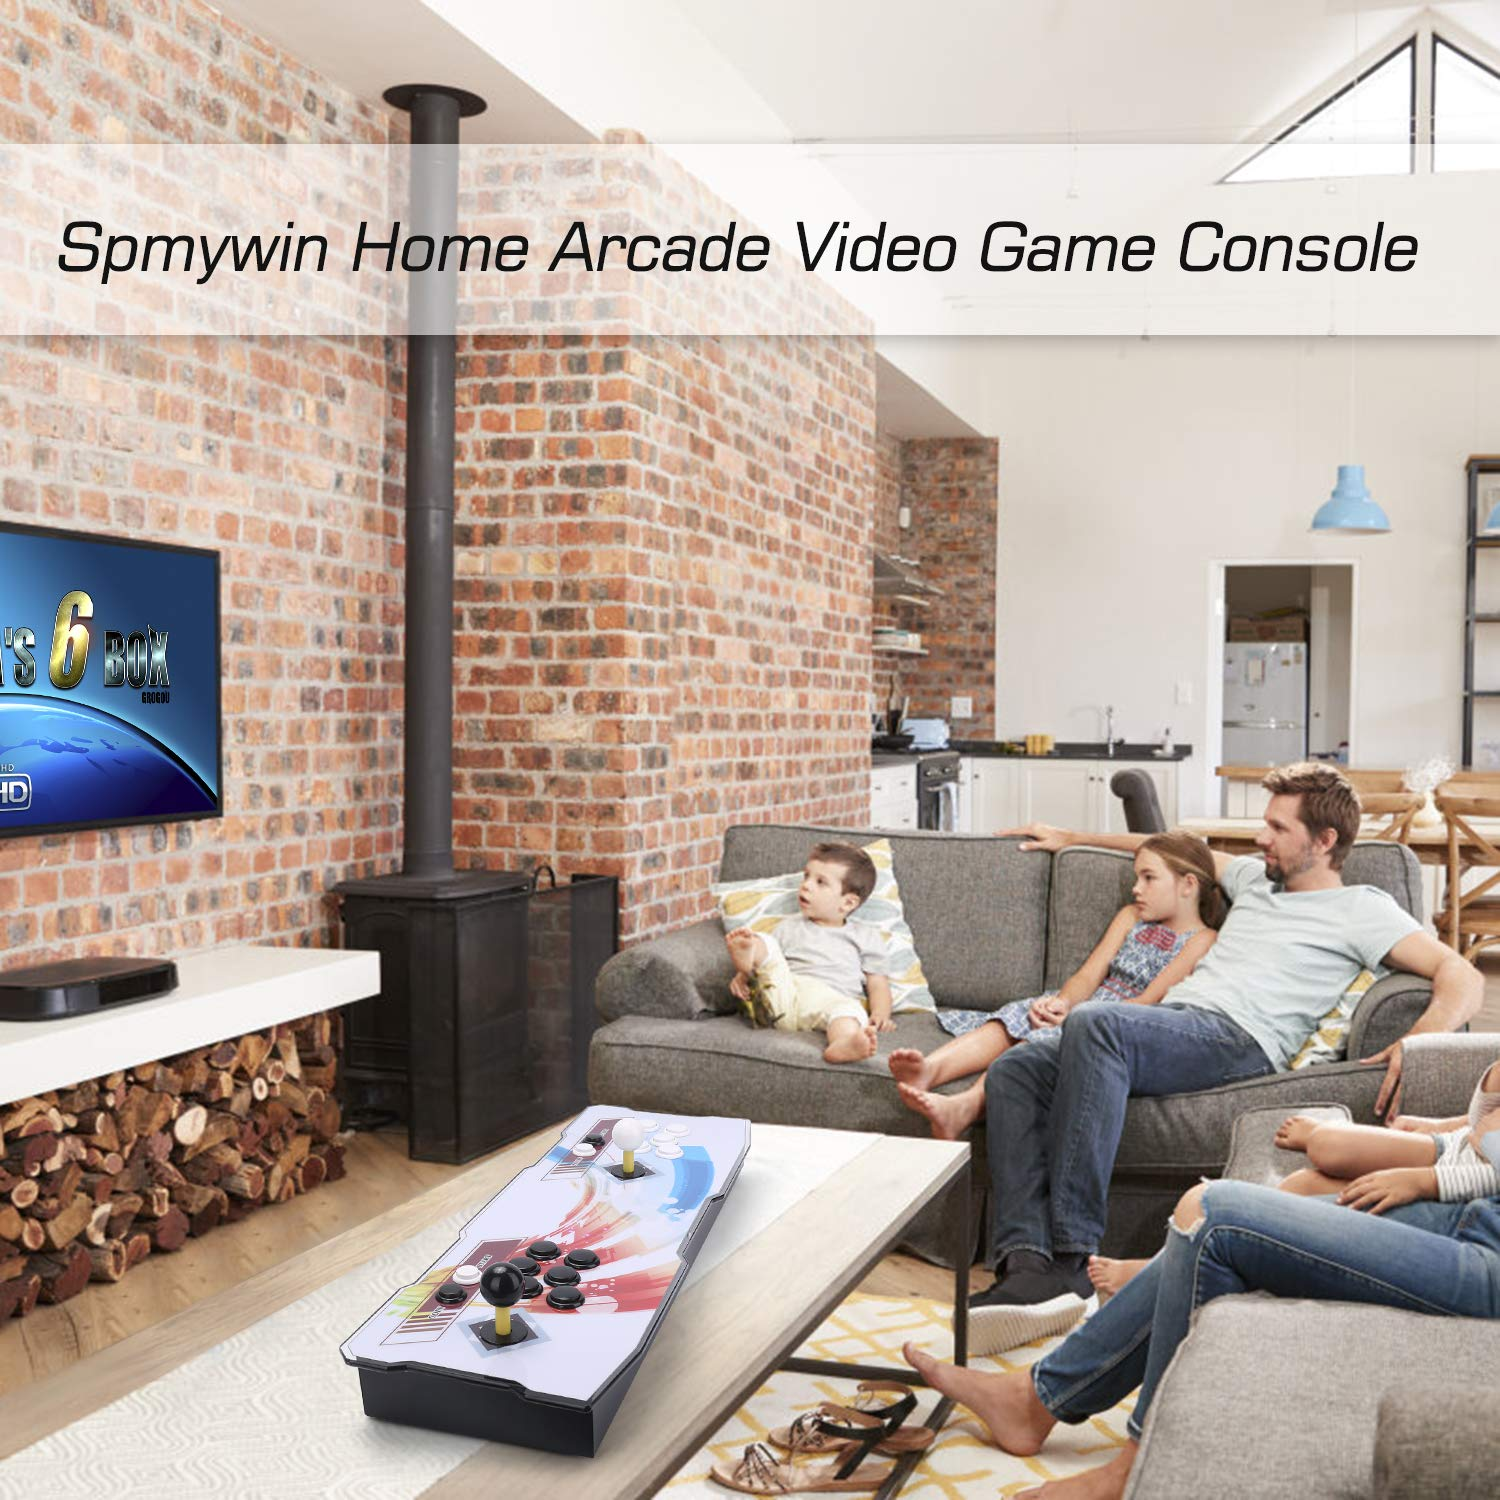 Spmywin 3D Pandoras Key 7 Arcade Video Game Console 1080P Full HD Support to Expand 2D & 3D Games Come with 32G U Drive by Spmywin (Image #2)